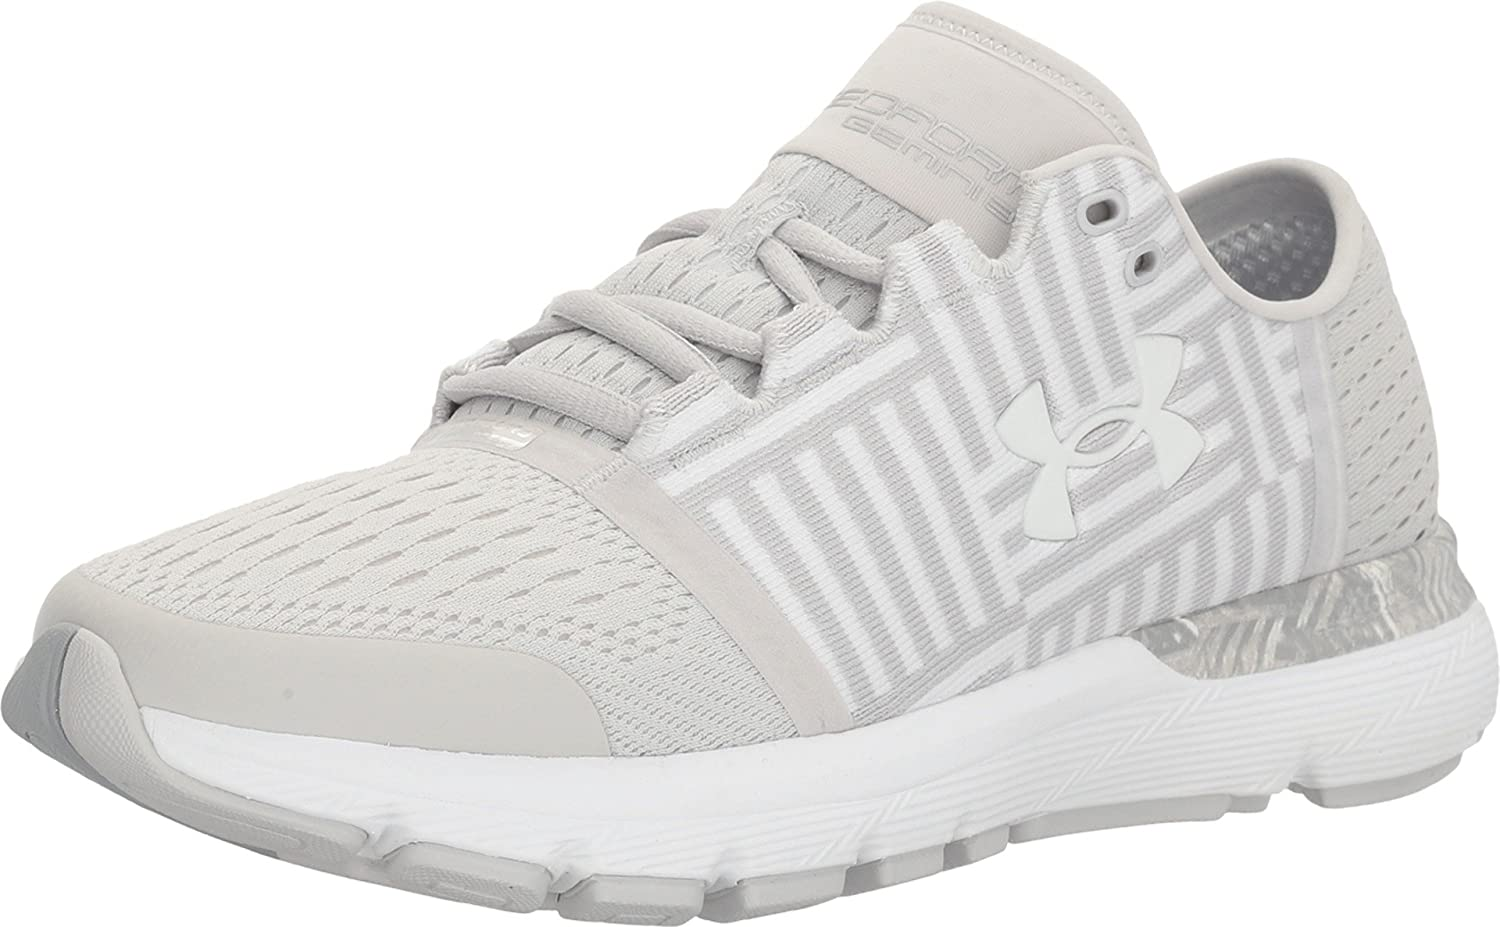 Under Armour Women's Speedform Gemini 3 B(M) Running Shoe B01GSSIKP4 9.5 B(M) 3 US|White/Glacier Gray/White 31864f